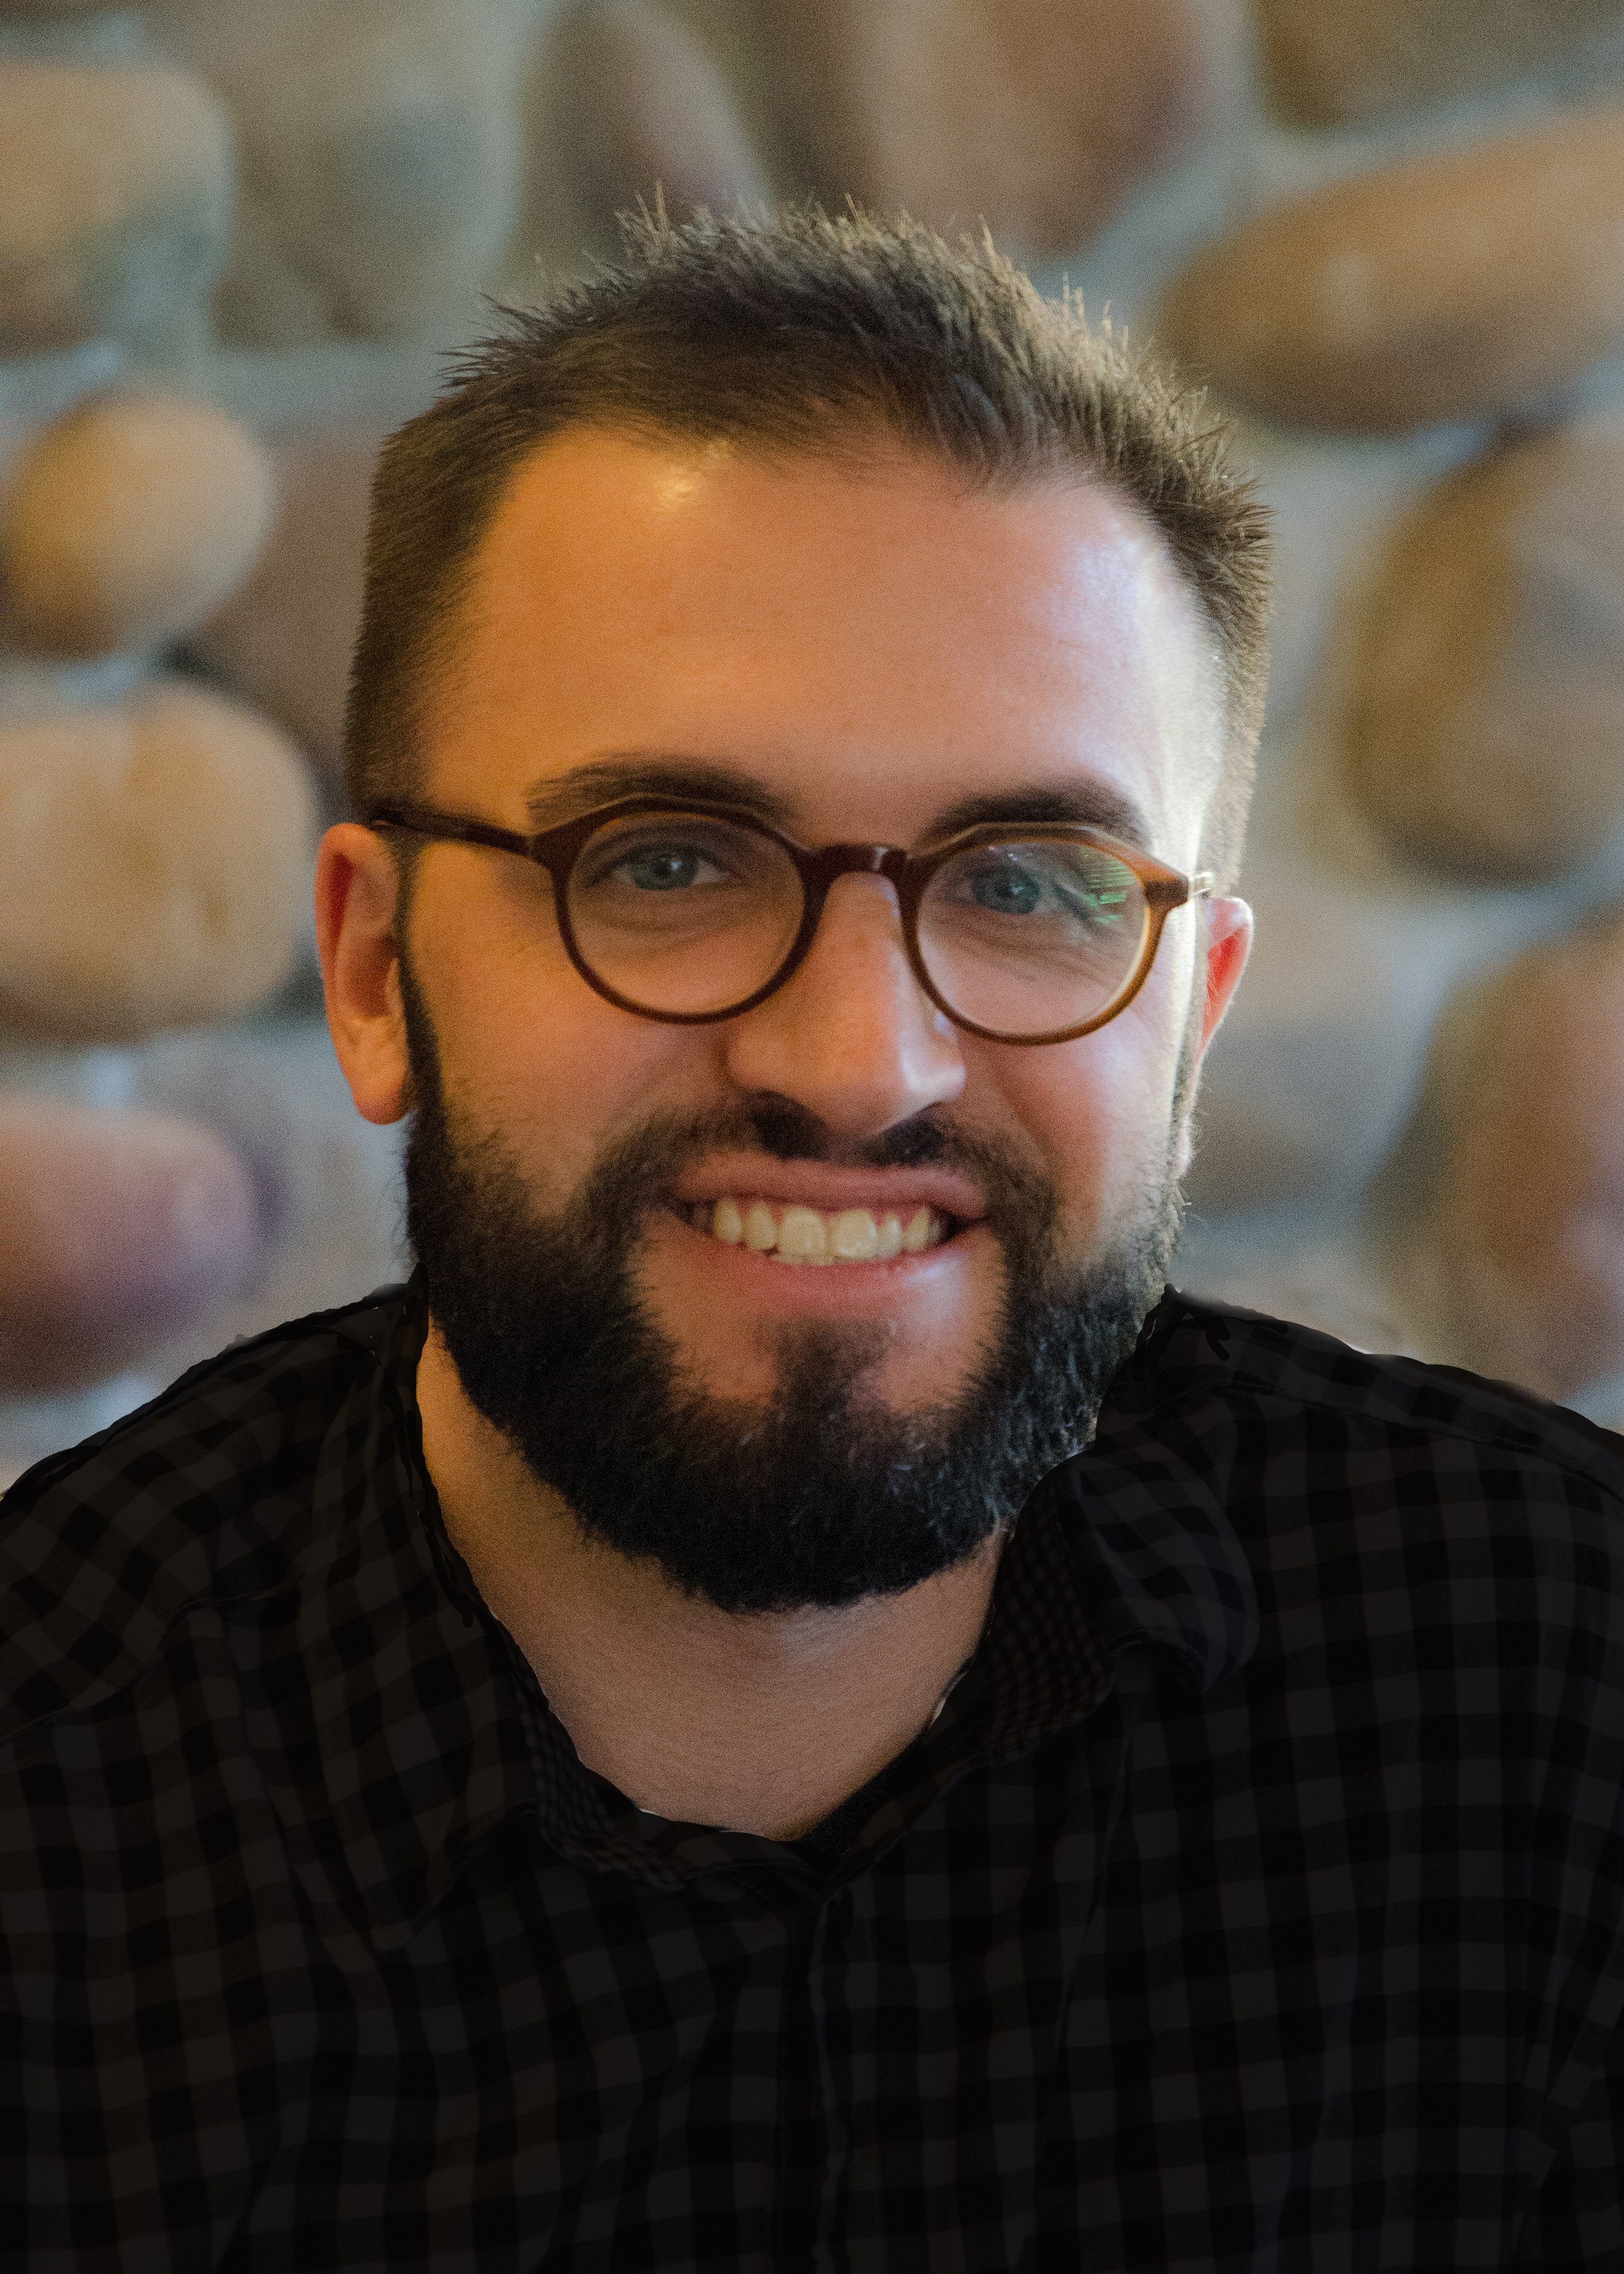 Jonathan Umbriaco - Jonathan Umbriaco is a Associate Clinical Mental Health Counselor (ACMHC) and graduated with his Masters in Mental Health Counseling. He works with individuals and couples and leads groups for men.